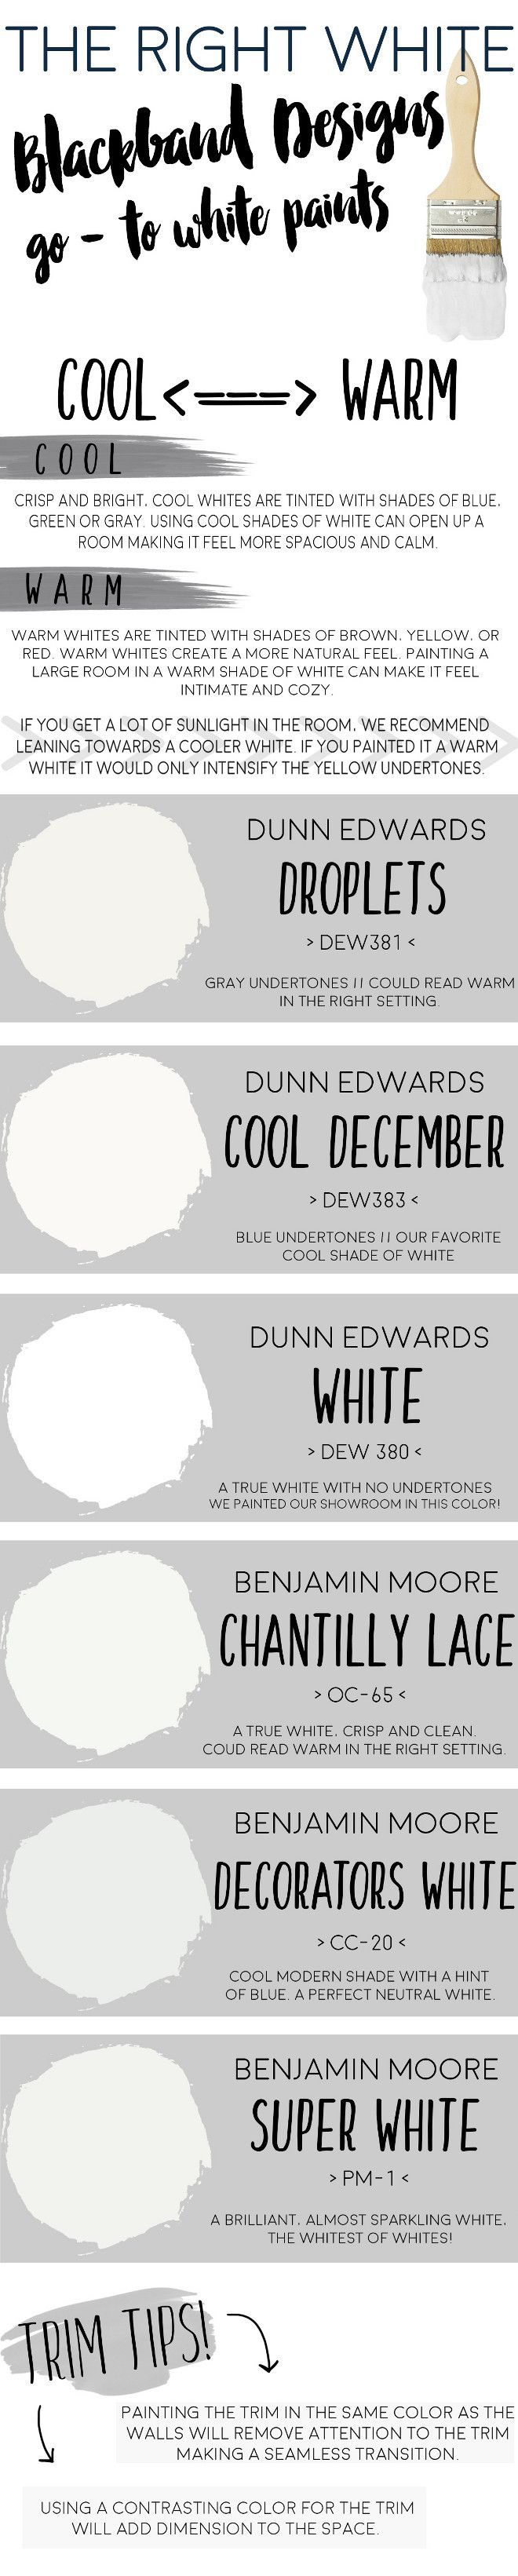 Designer Go To White Paints Cool And Warm White Paint Dunn Edwards Droplets Dew Dunn Edwards Cool December Dew Dunn Edwards White Dew Benjamin Moore